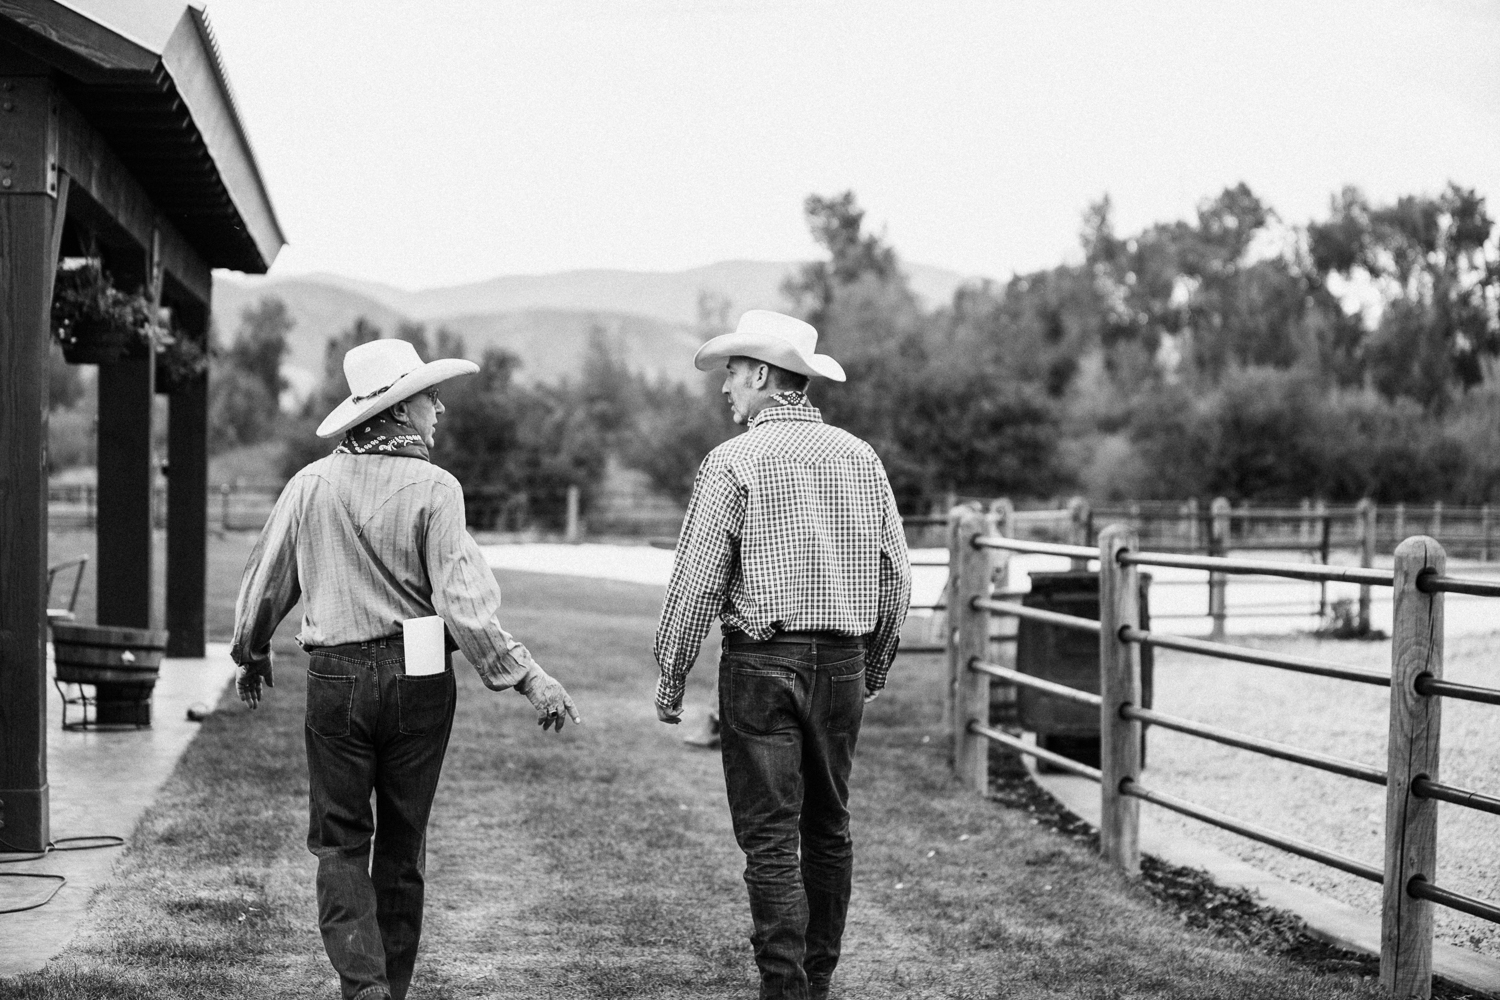 candid-black-and-white-father-son-image-heber-utah-labor-day-family-celebration-jen-fairchild-photography